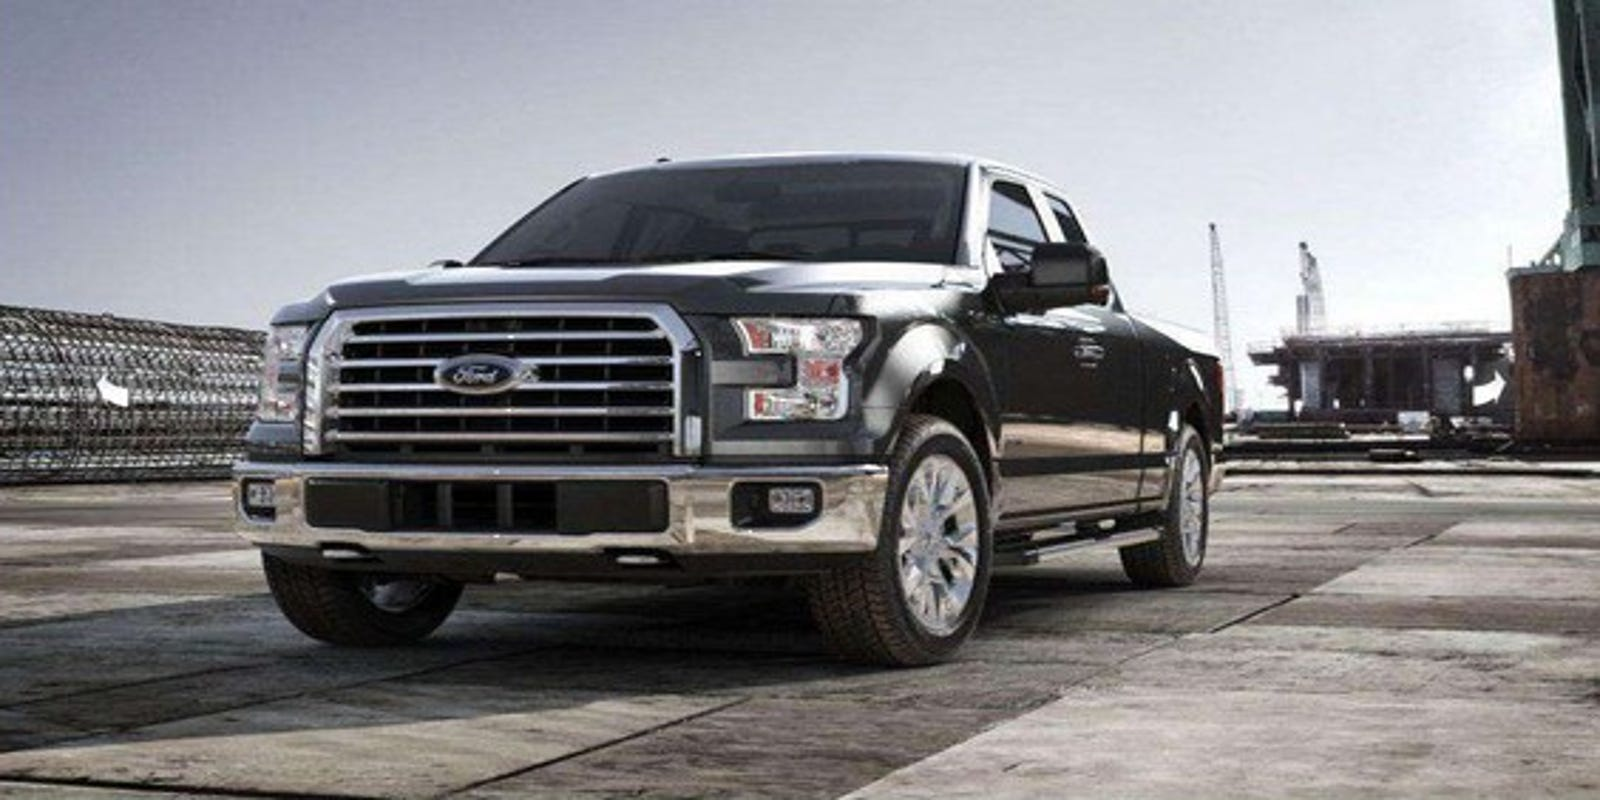 Ford f 150 recall ford to fix 2 million pickups with seat belt defect